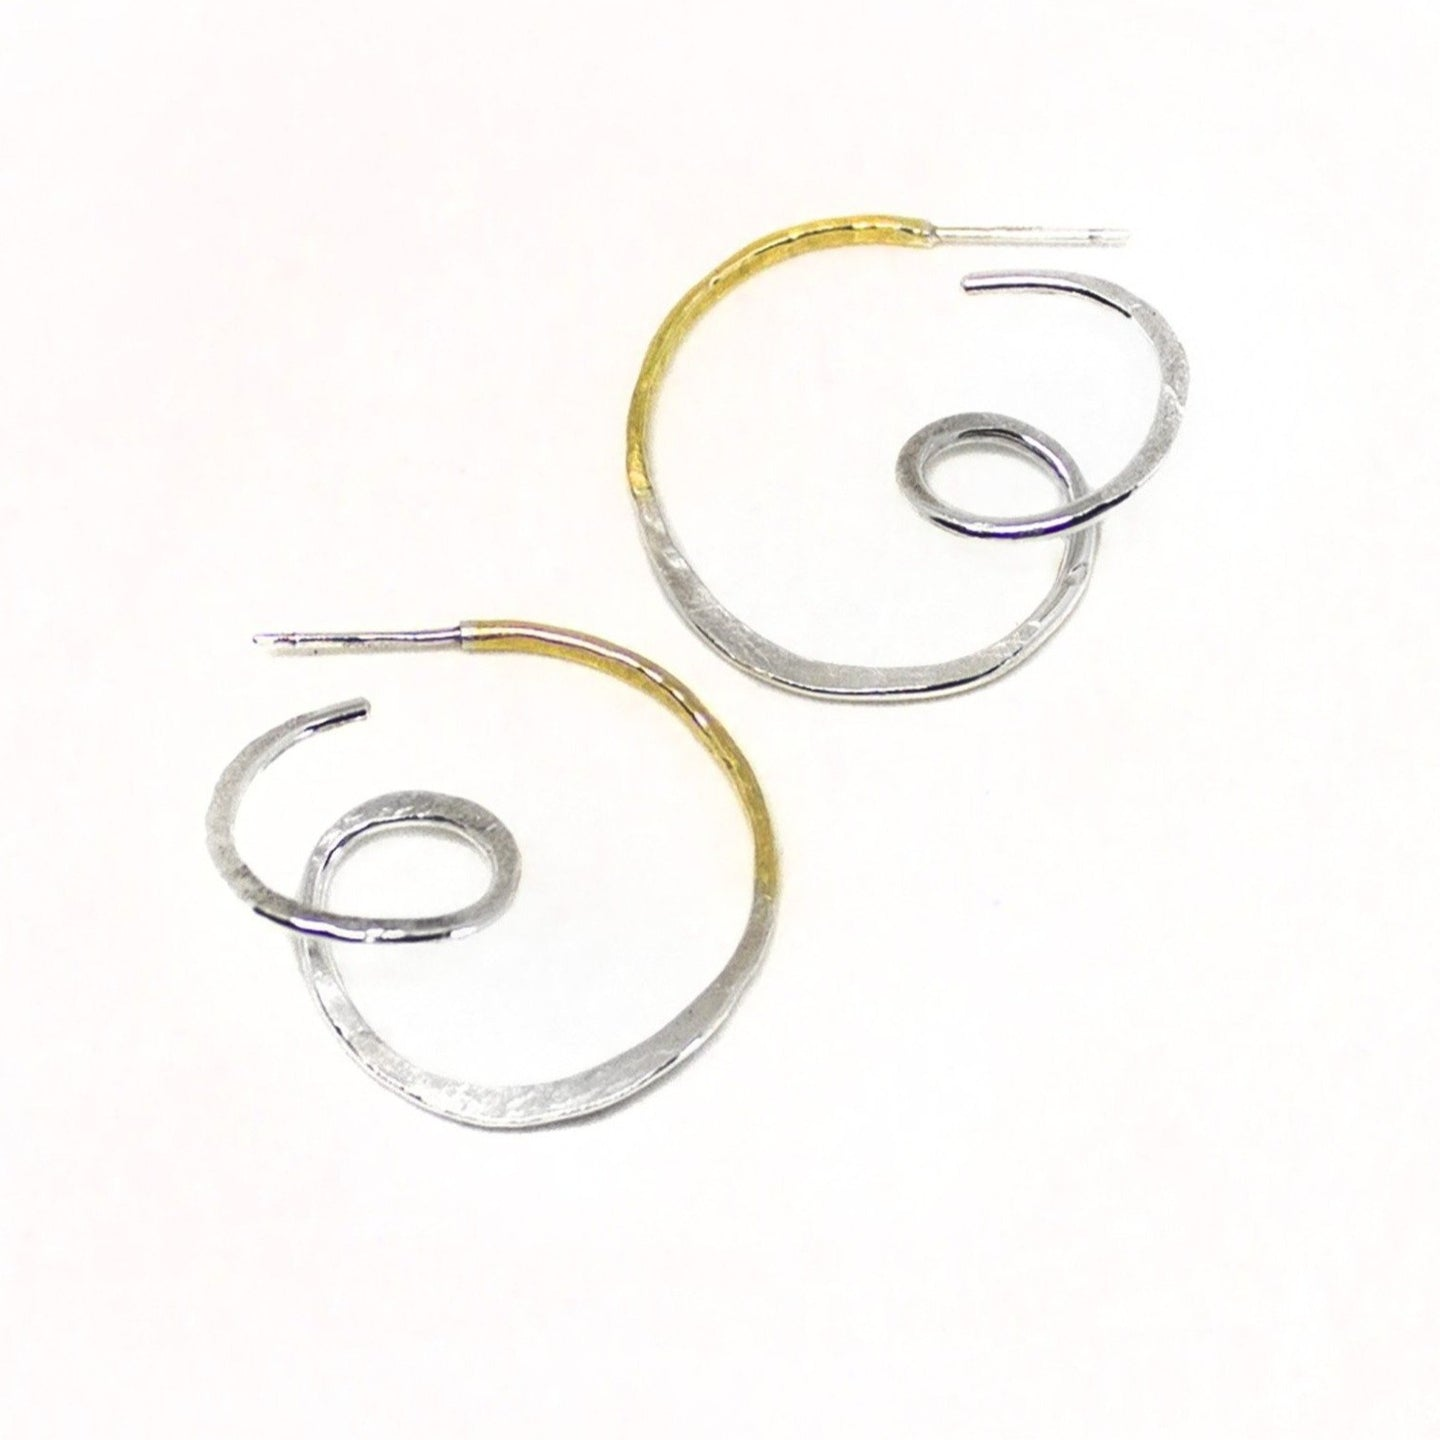 Small Loop D Loop Hoop